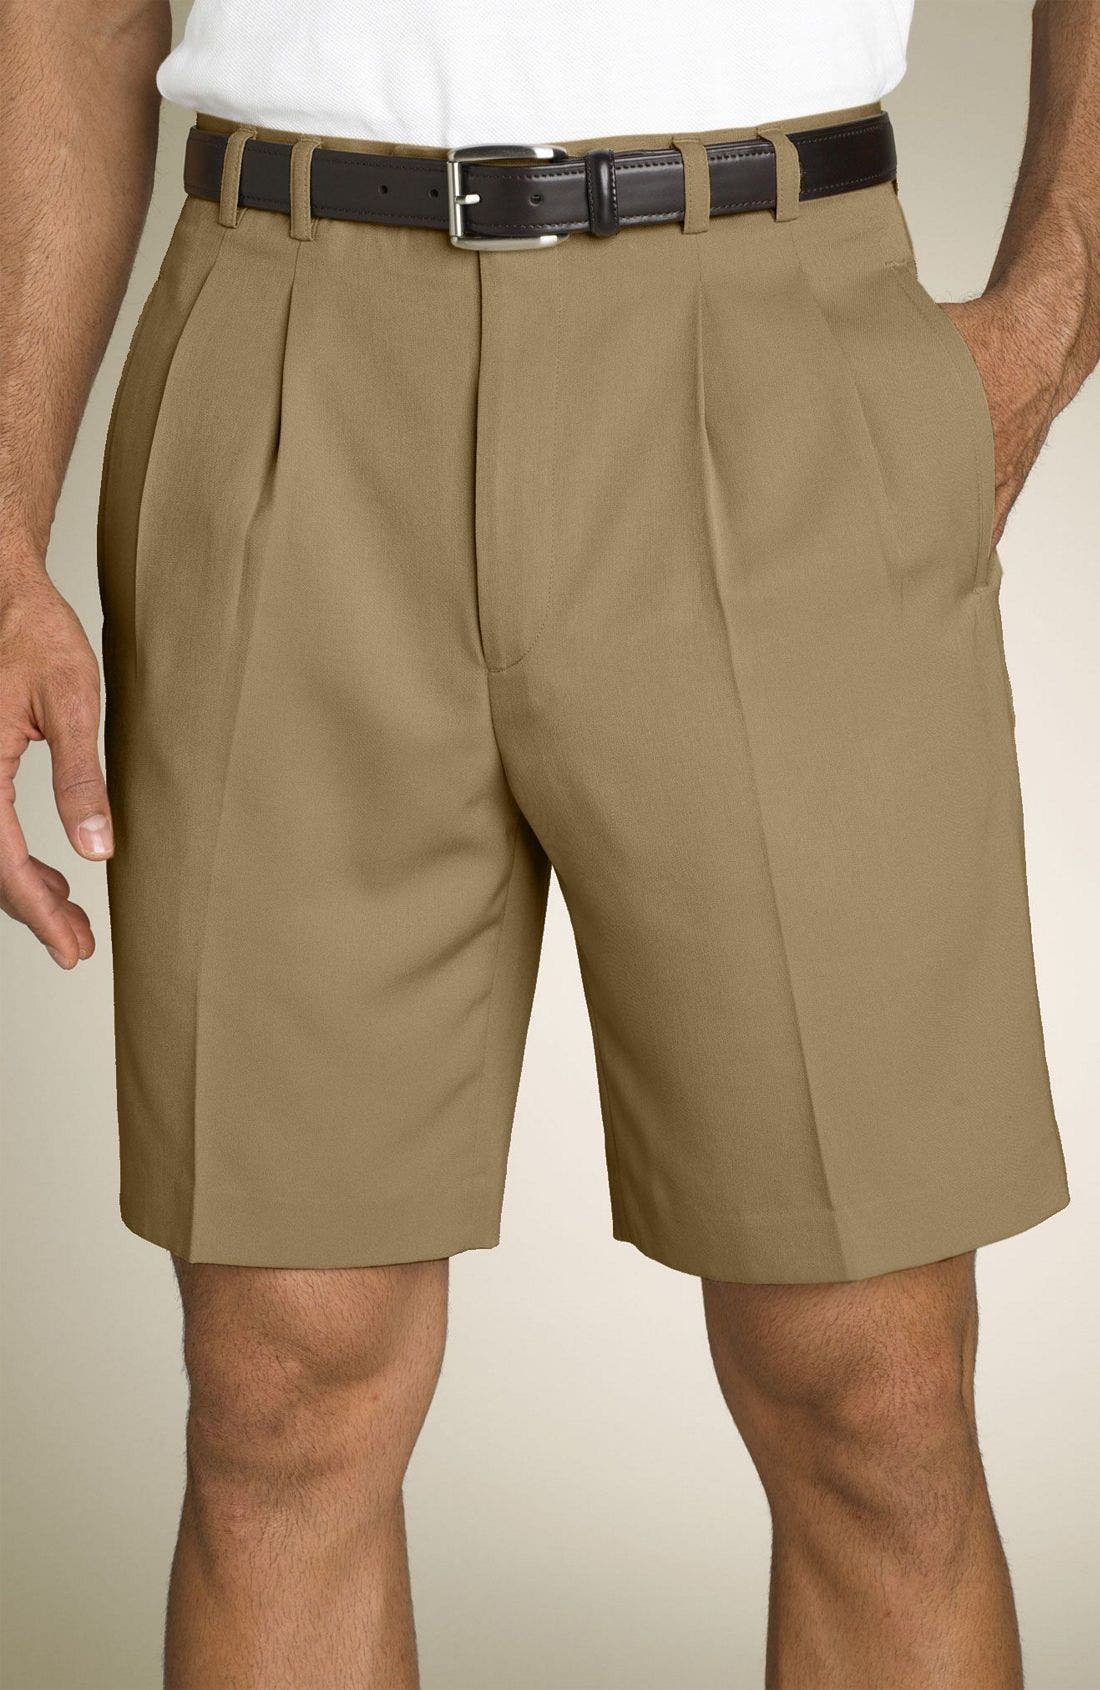 Alternate Image 1 Selected - Cutter & Buck Microfiber Golf Shorts (Big & Tall)